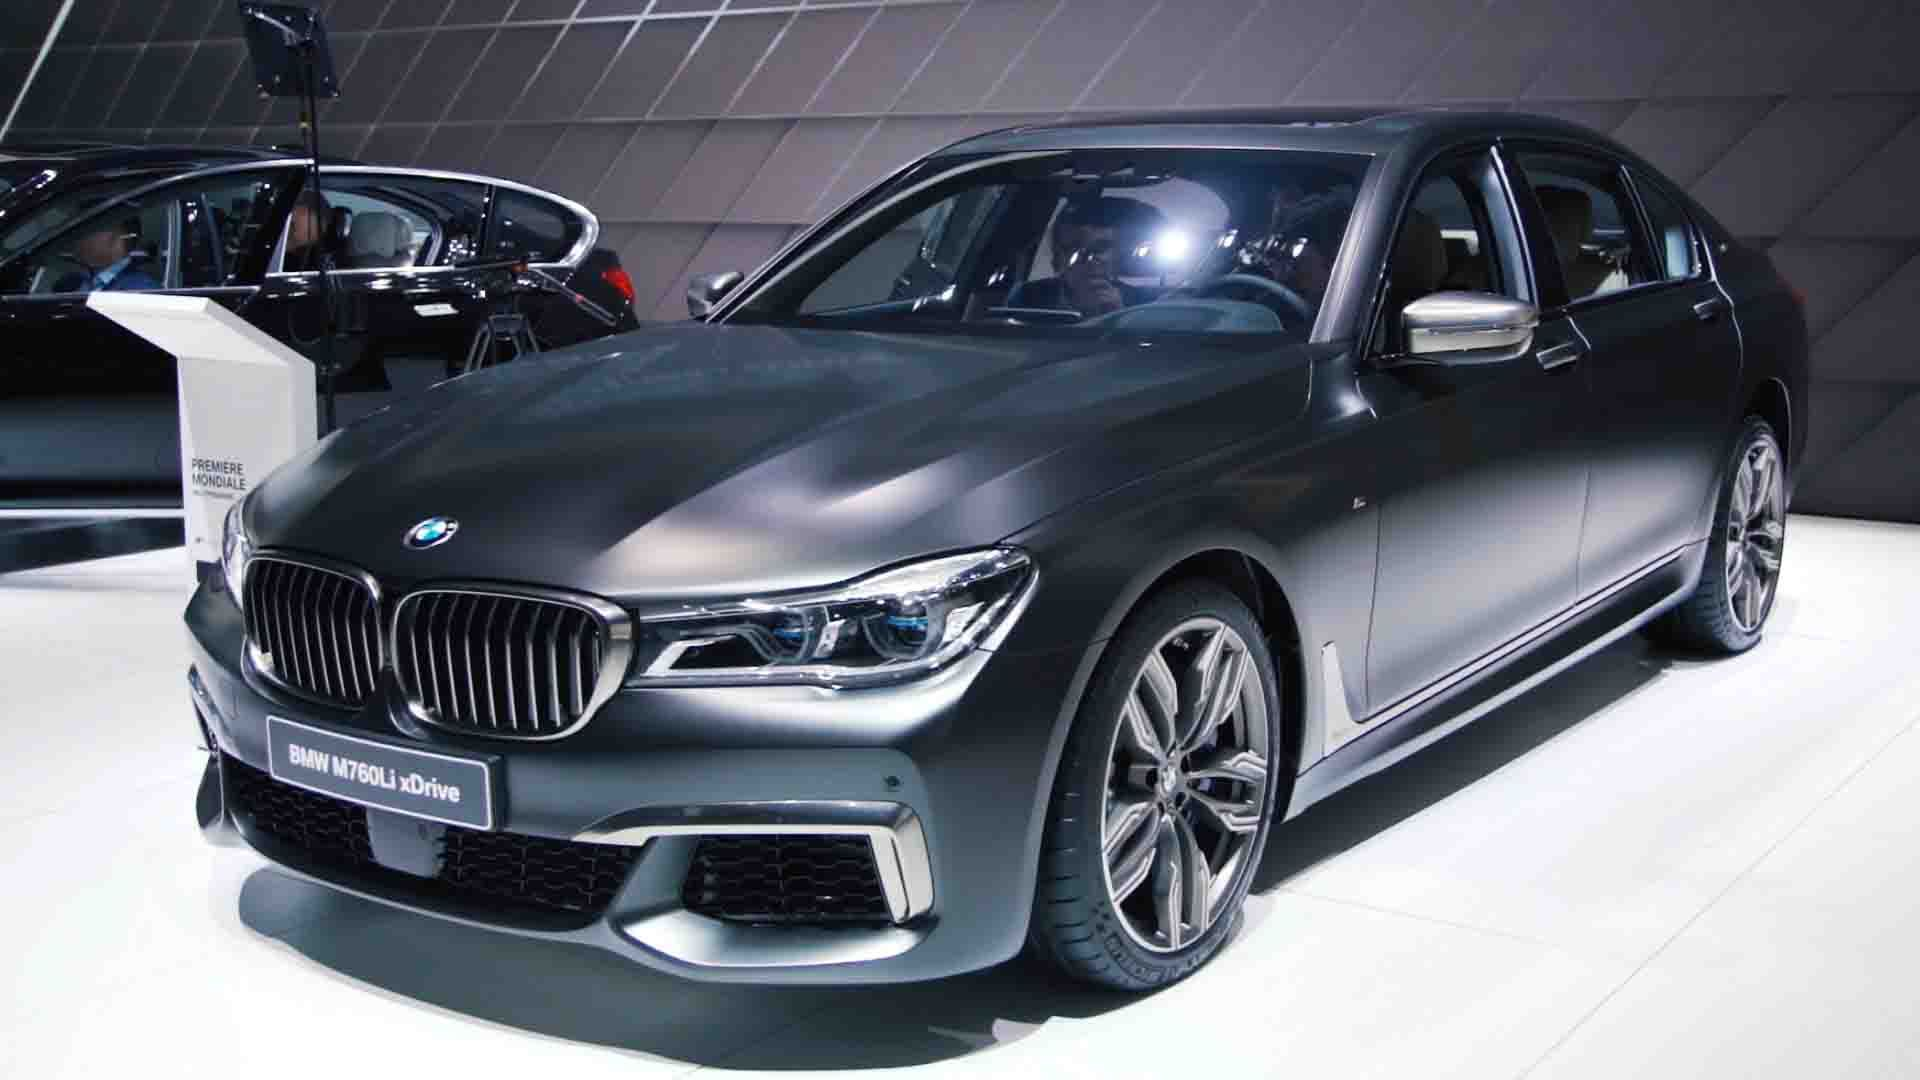 2017 bmw a car that gives riders the best of both worlds bmw is making news lately for the creation of the 2017 bmw known for its sporty and dynamic